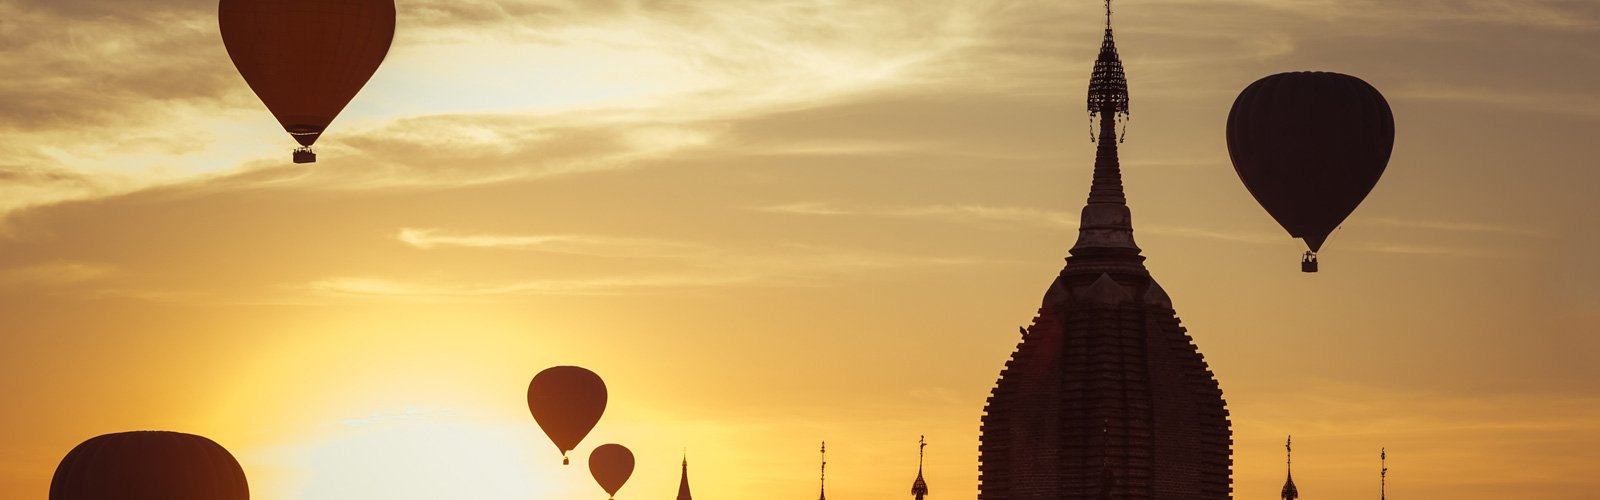 Hot air balloons over mosques